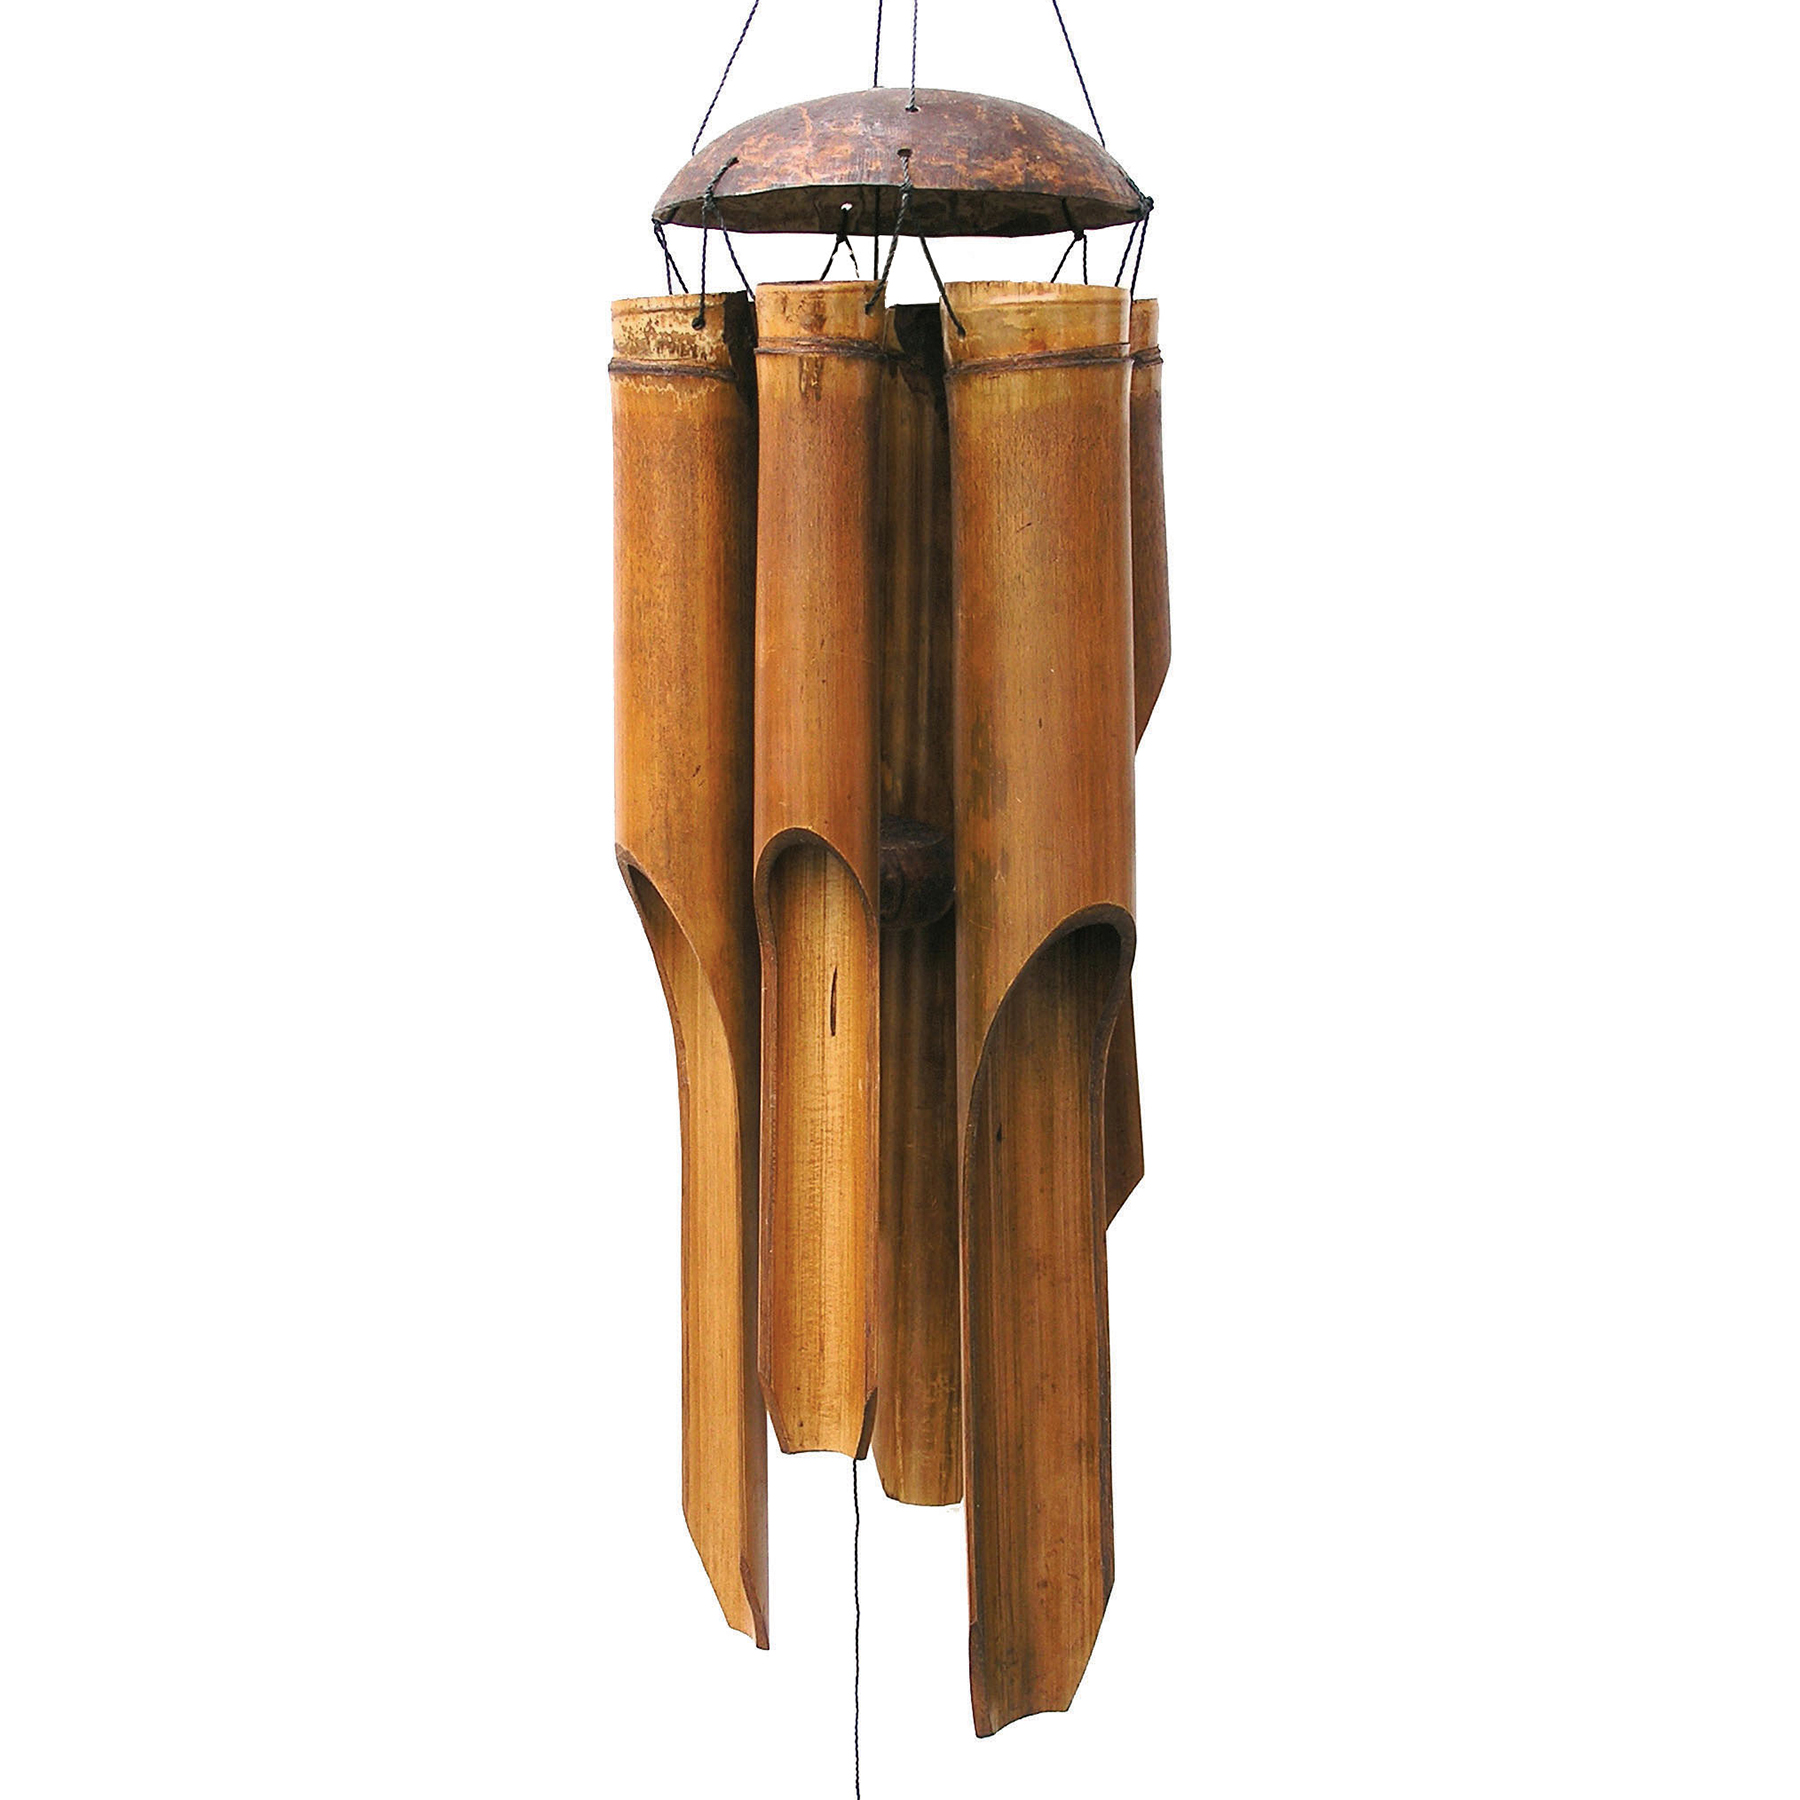 132, 133, 134 - Antique Simple Bamboo Wind Chime